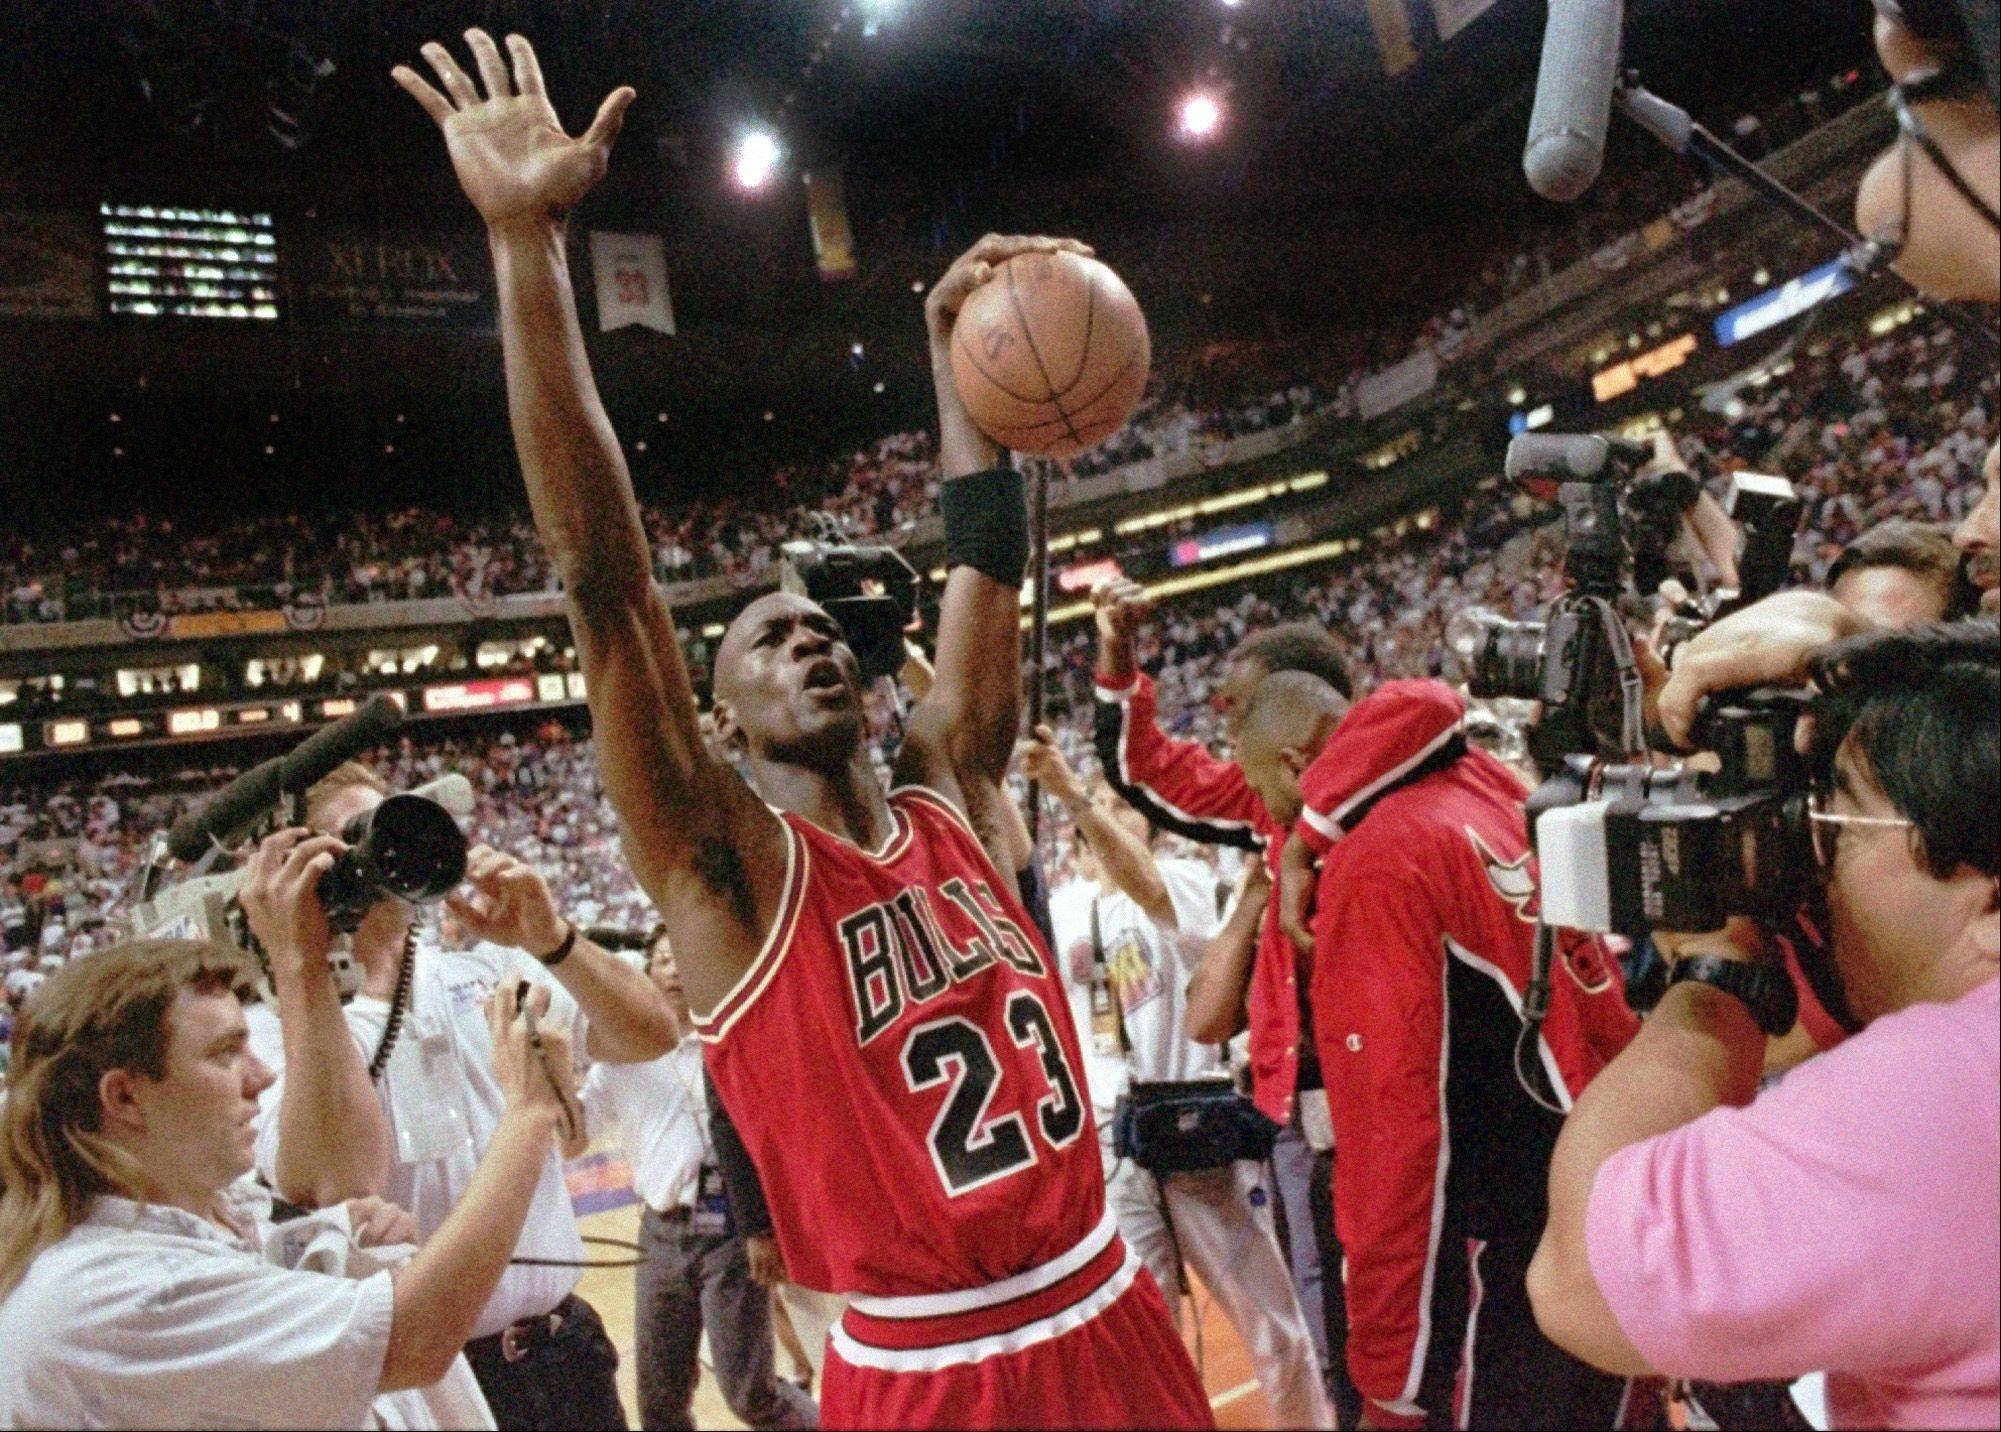 Michael Jordan celebrates after the Bulls beat the Phoenix Suns 99-98 to win their third consecutive NBA title in Phoenix, June 20, 1993. Jordan scored 33 points and now holds the record for the highest scoring average in finals history, 41.0, eclipsing Rick Barry's 1967 standard of 40.8.